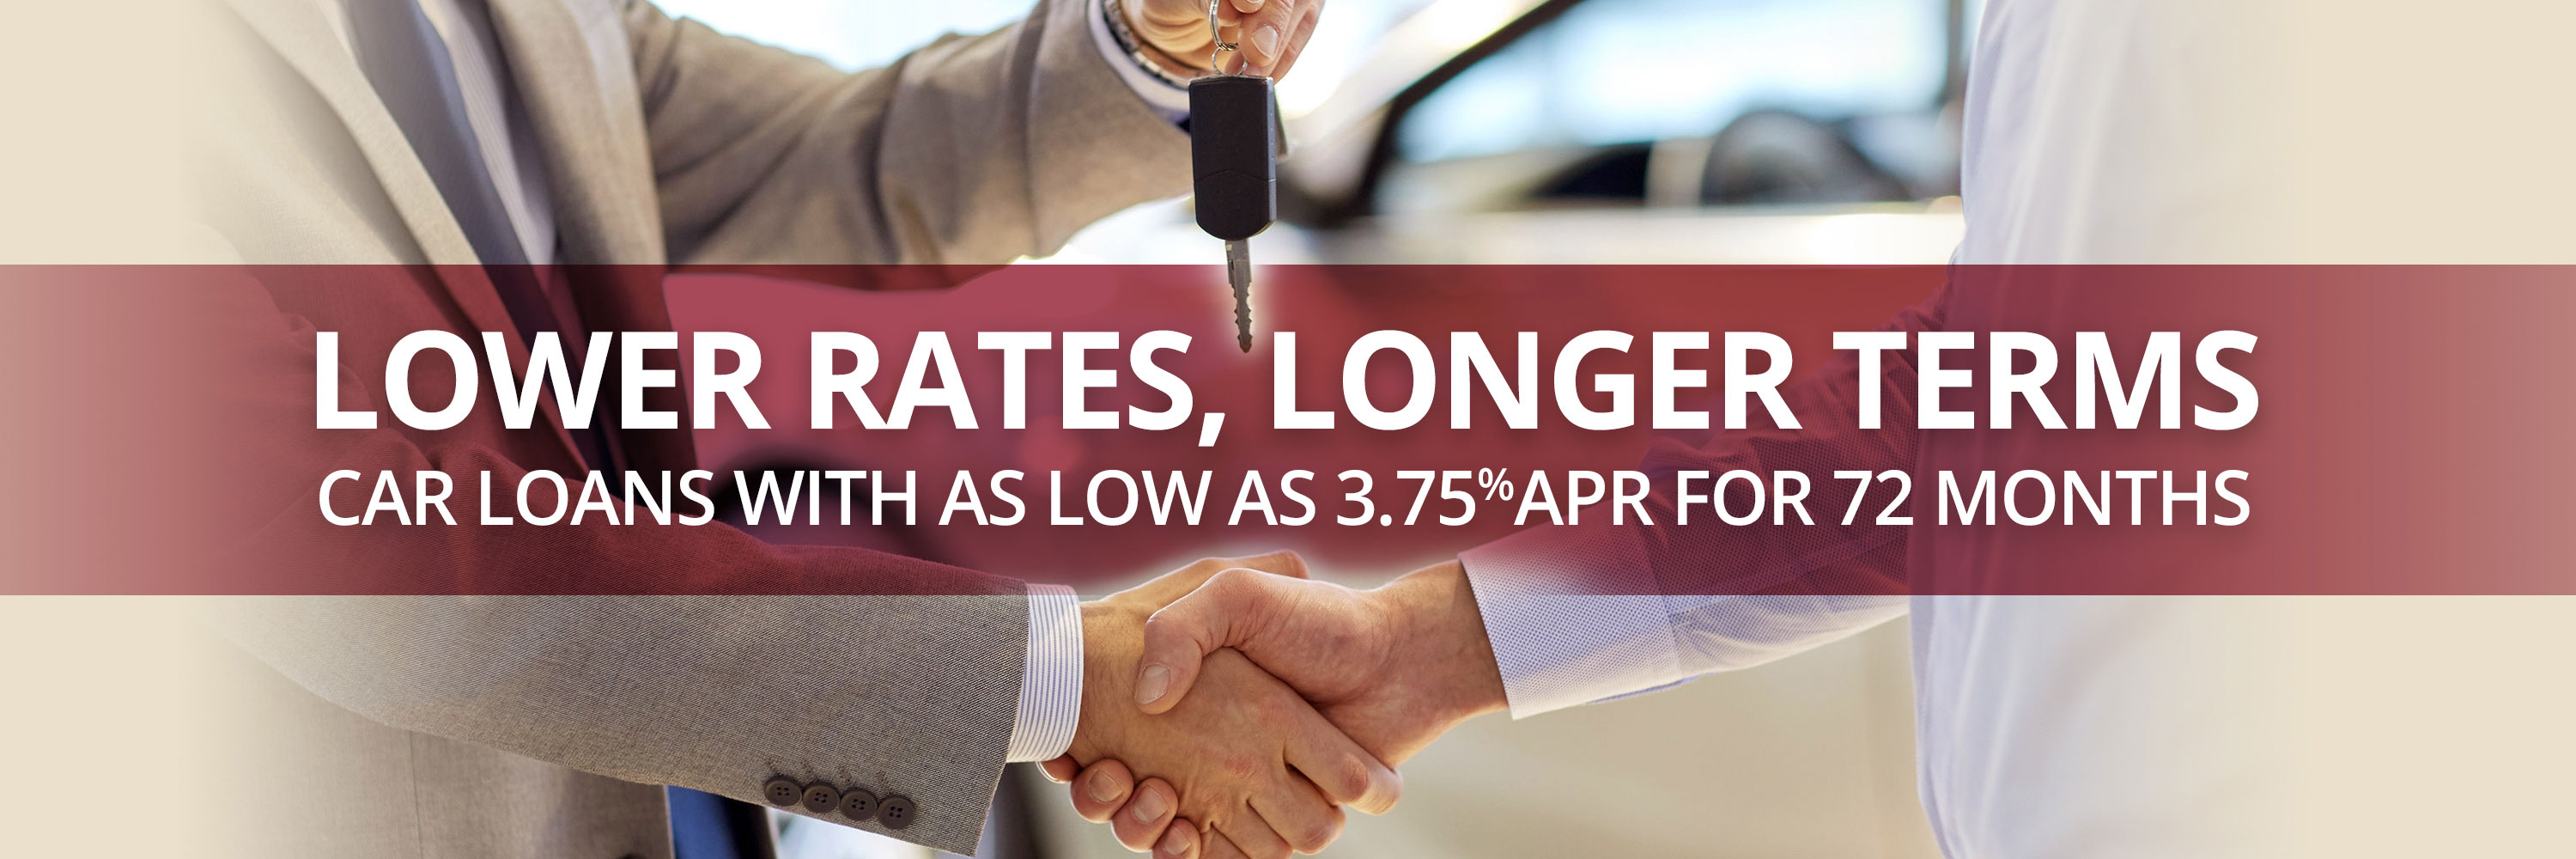 Car loans as low as 3.75% for 72 months!